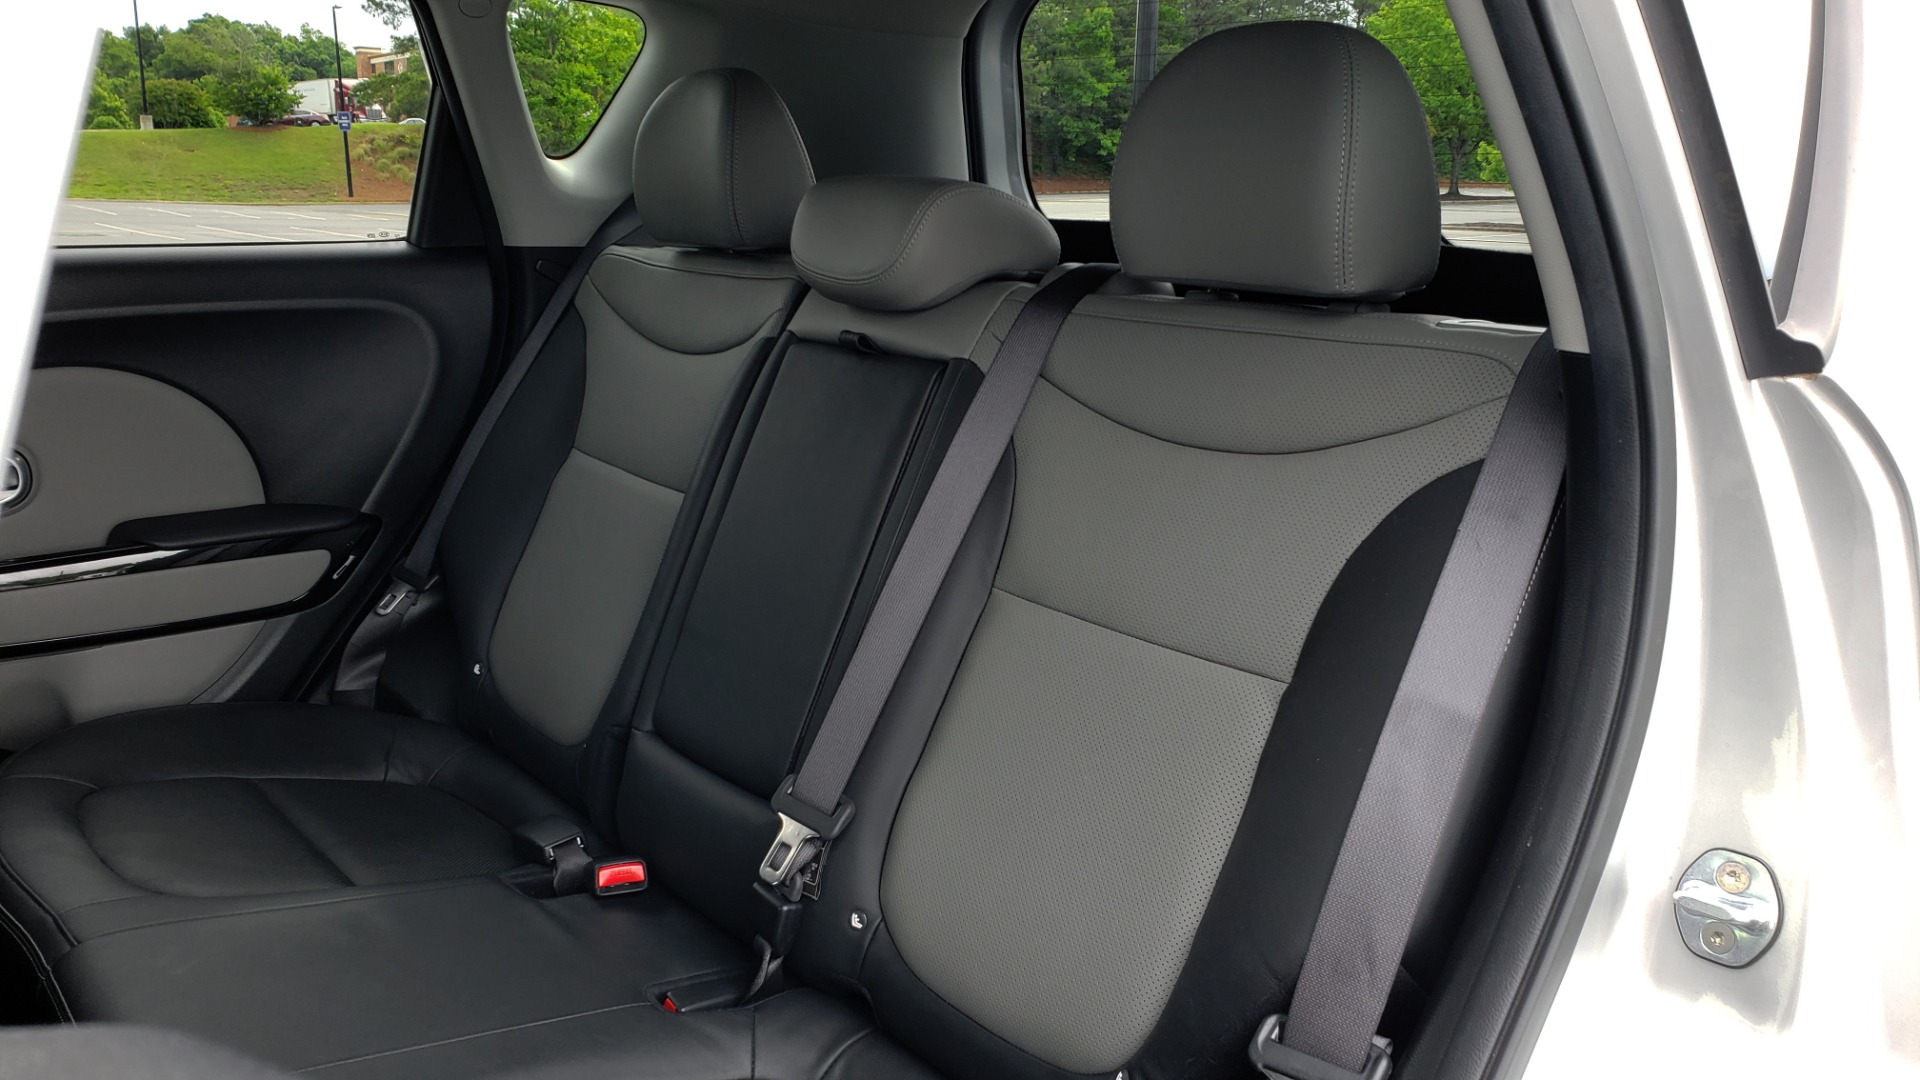 Used 2017 Kia SOUL PLUS / NAV / SUNROOF / LEATHER / HTD STS / REARVIEW for sale $16,995 at Formula Imports in Charlotte NC 28227 56